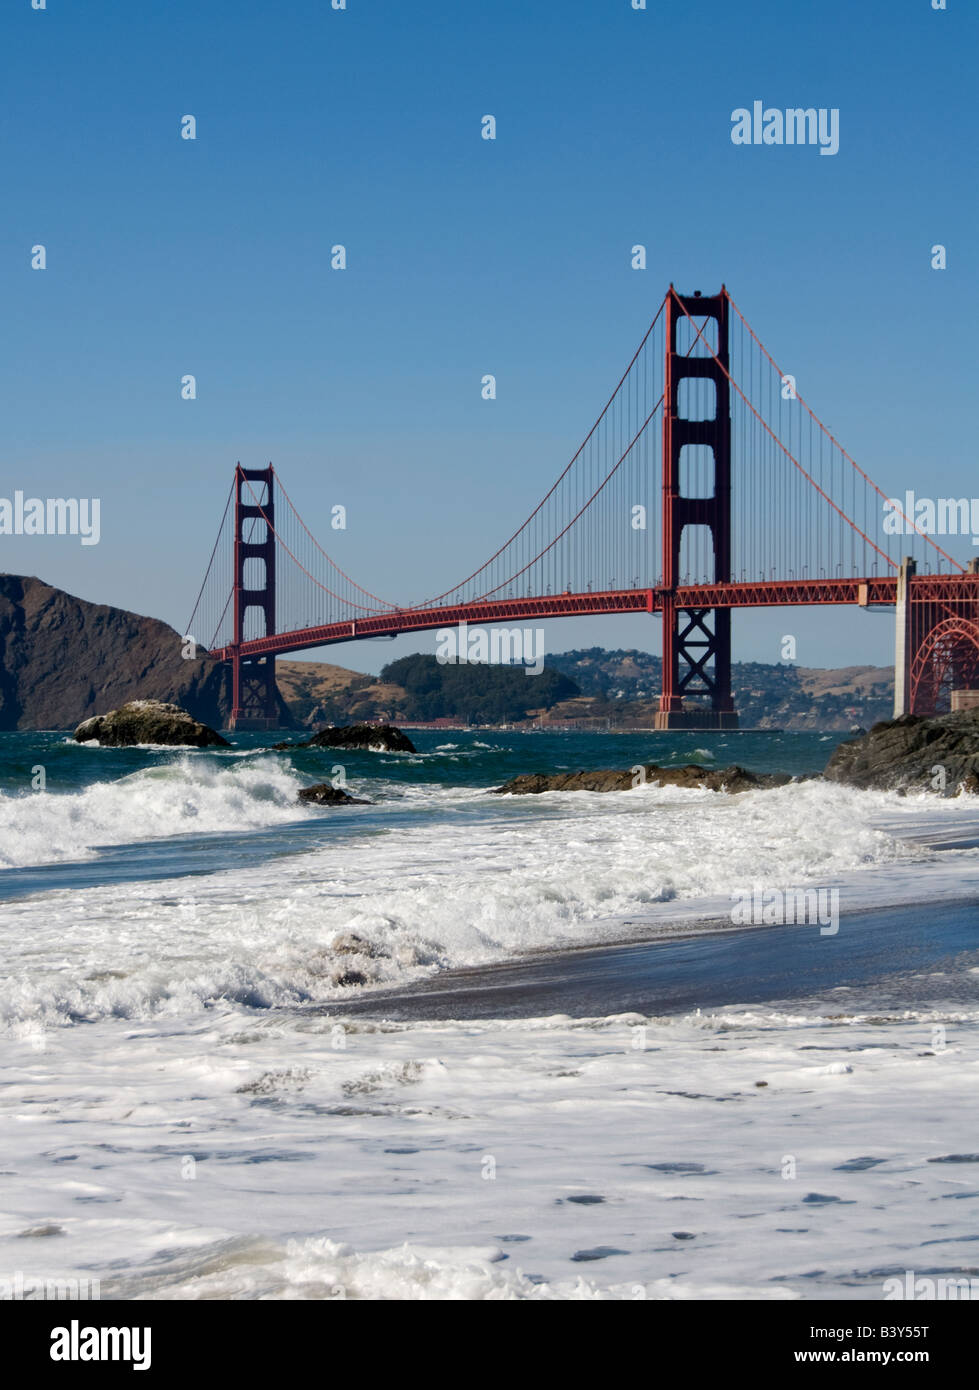 California San Francisco Golden Gate Bridge from Baker Beach Photo 2 casanf83397 Photo Lee Foster 2008 - Stock Image